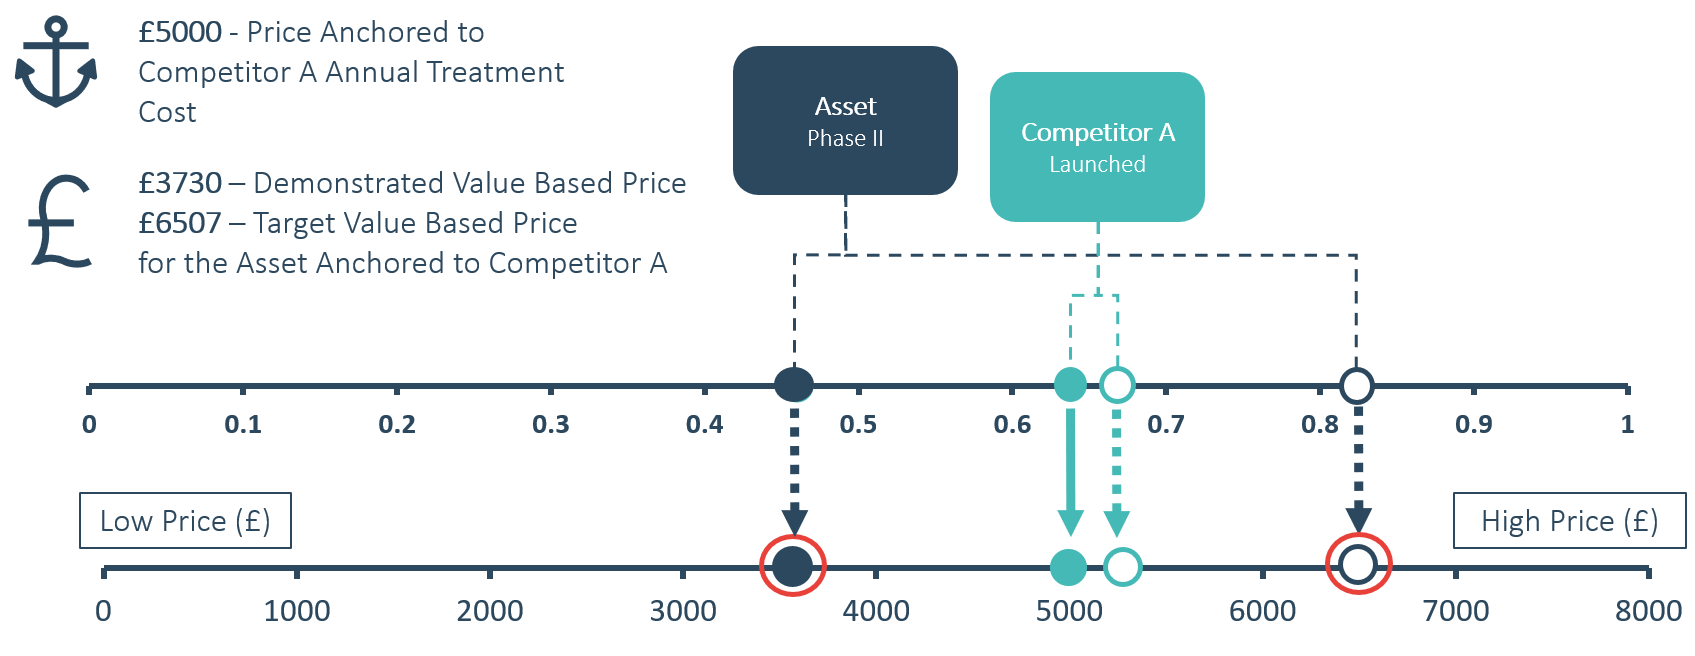 Value Based Pricing using price anchoring with i-vbp